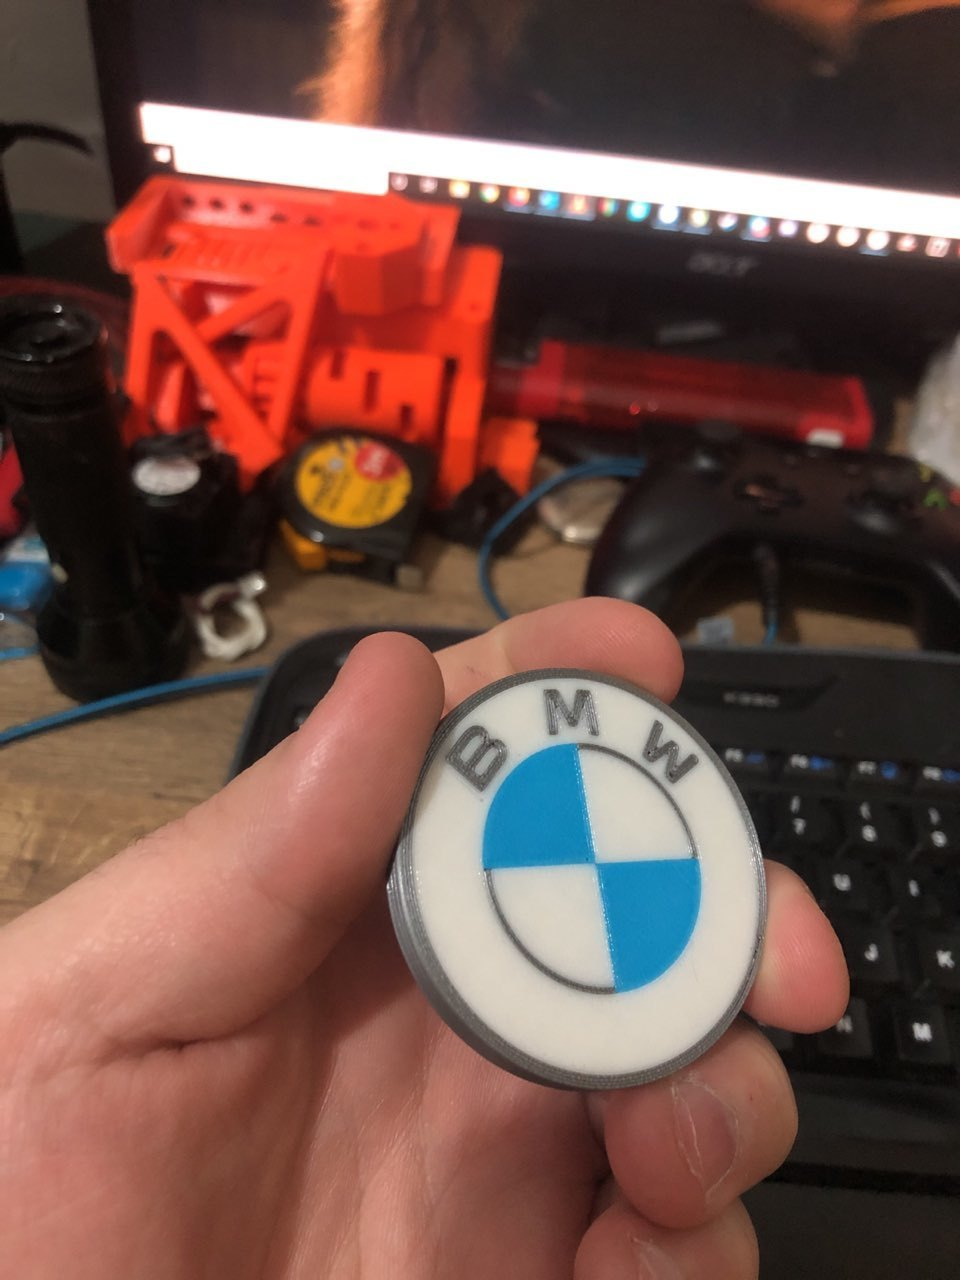 photo5888752668418093849.jpg Download free STL file BMW LOGO 2020 Multi Material • 3D printing object, 3Dimpact